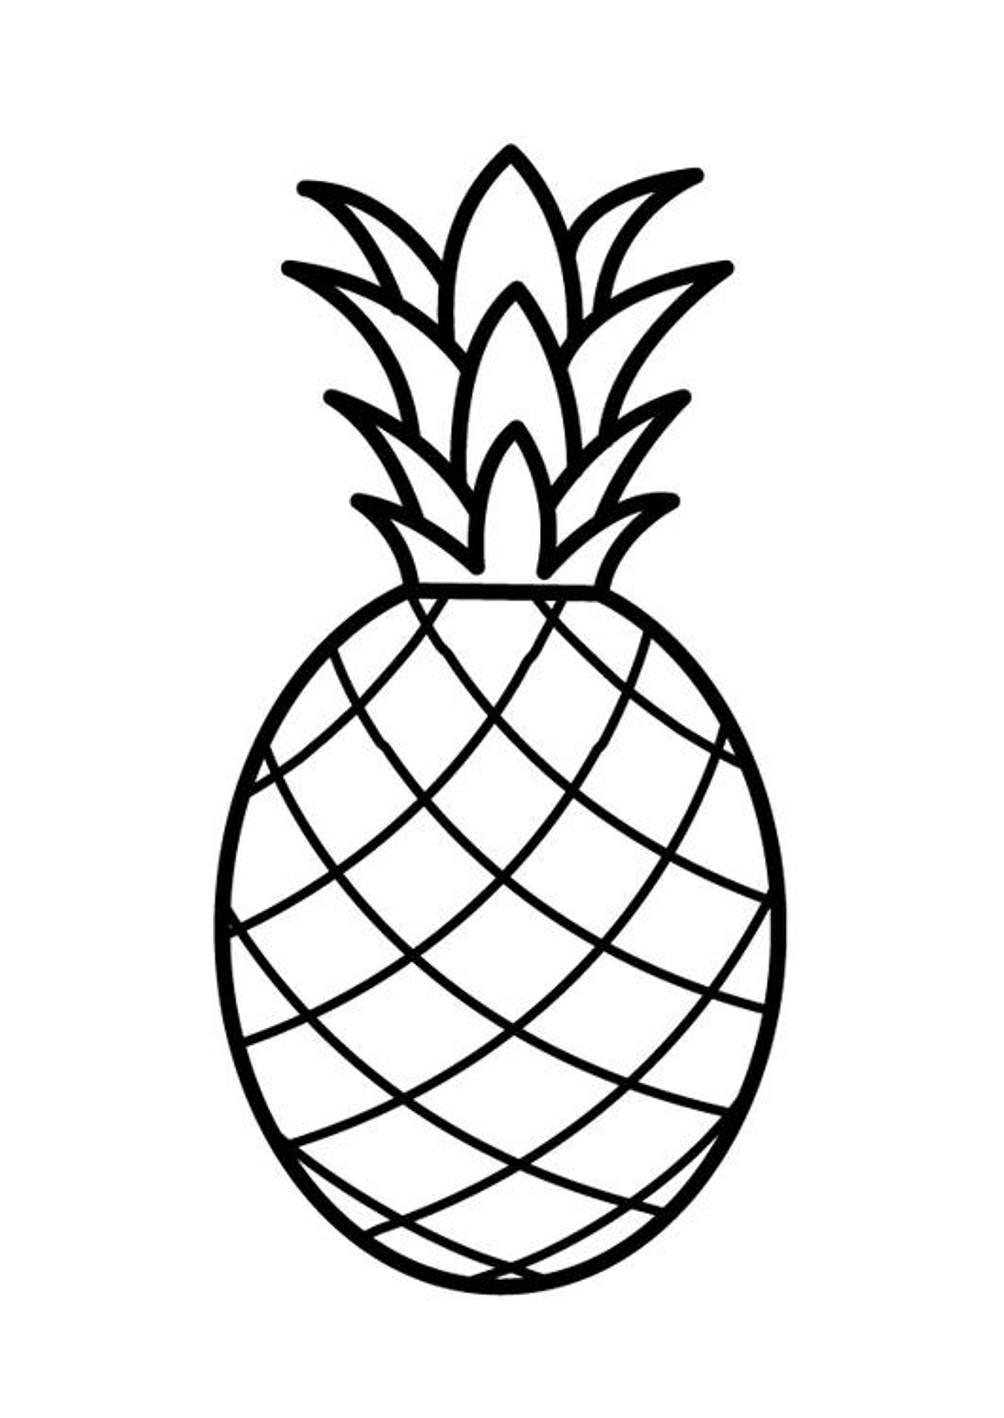 fruits drawing for colouring colouring drawing for kids at getdrawings free download drawing for colouring fruits